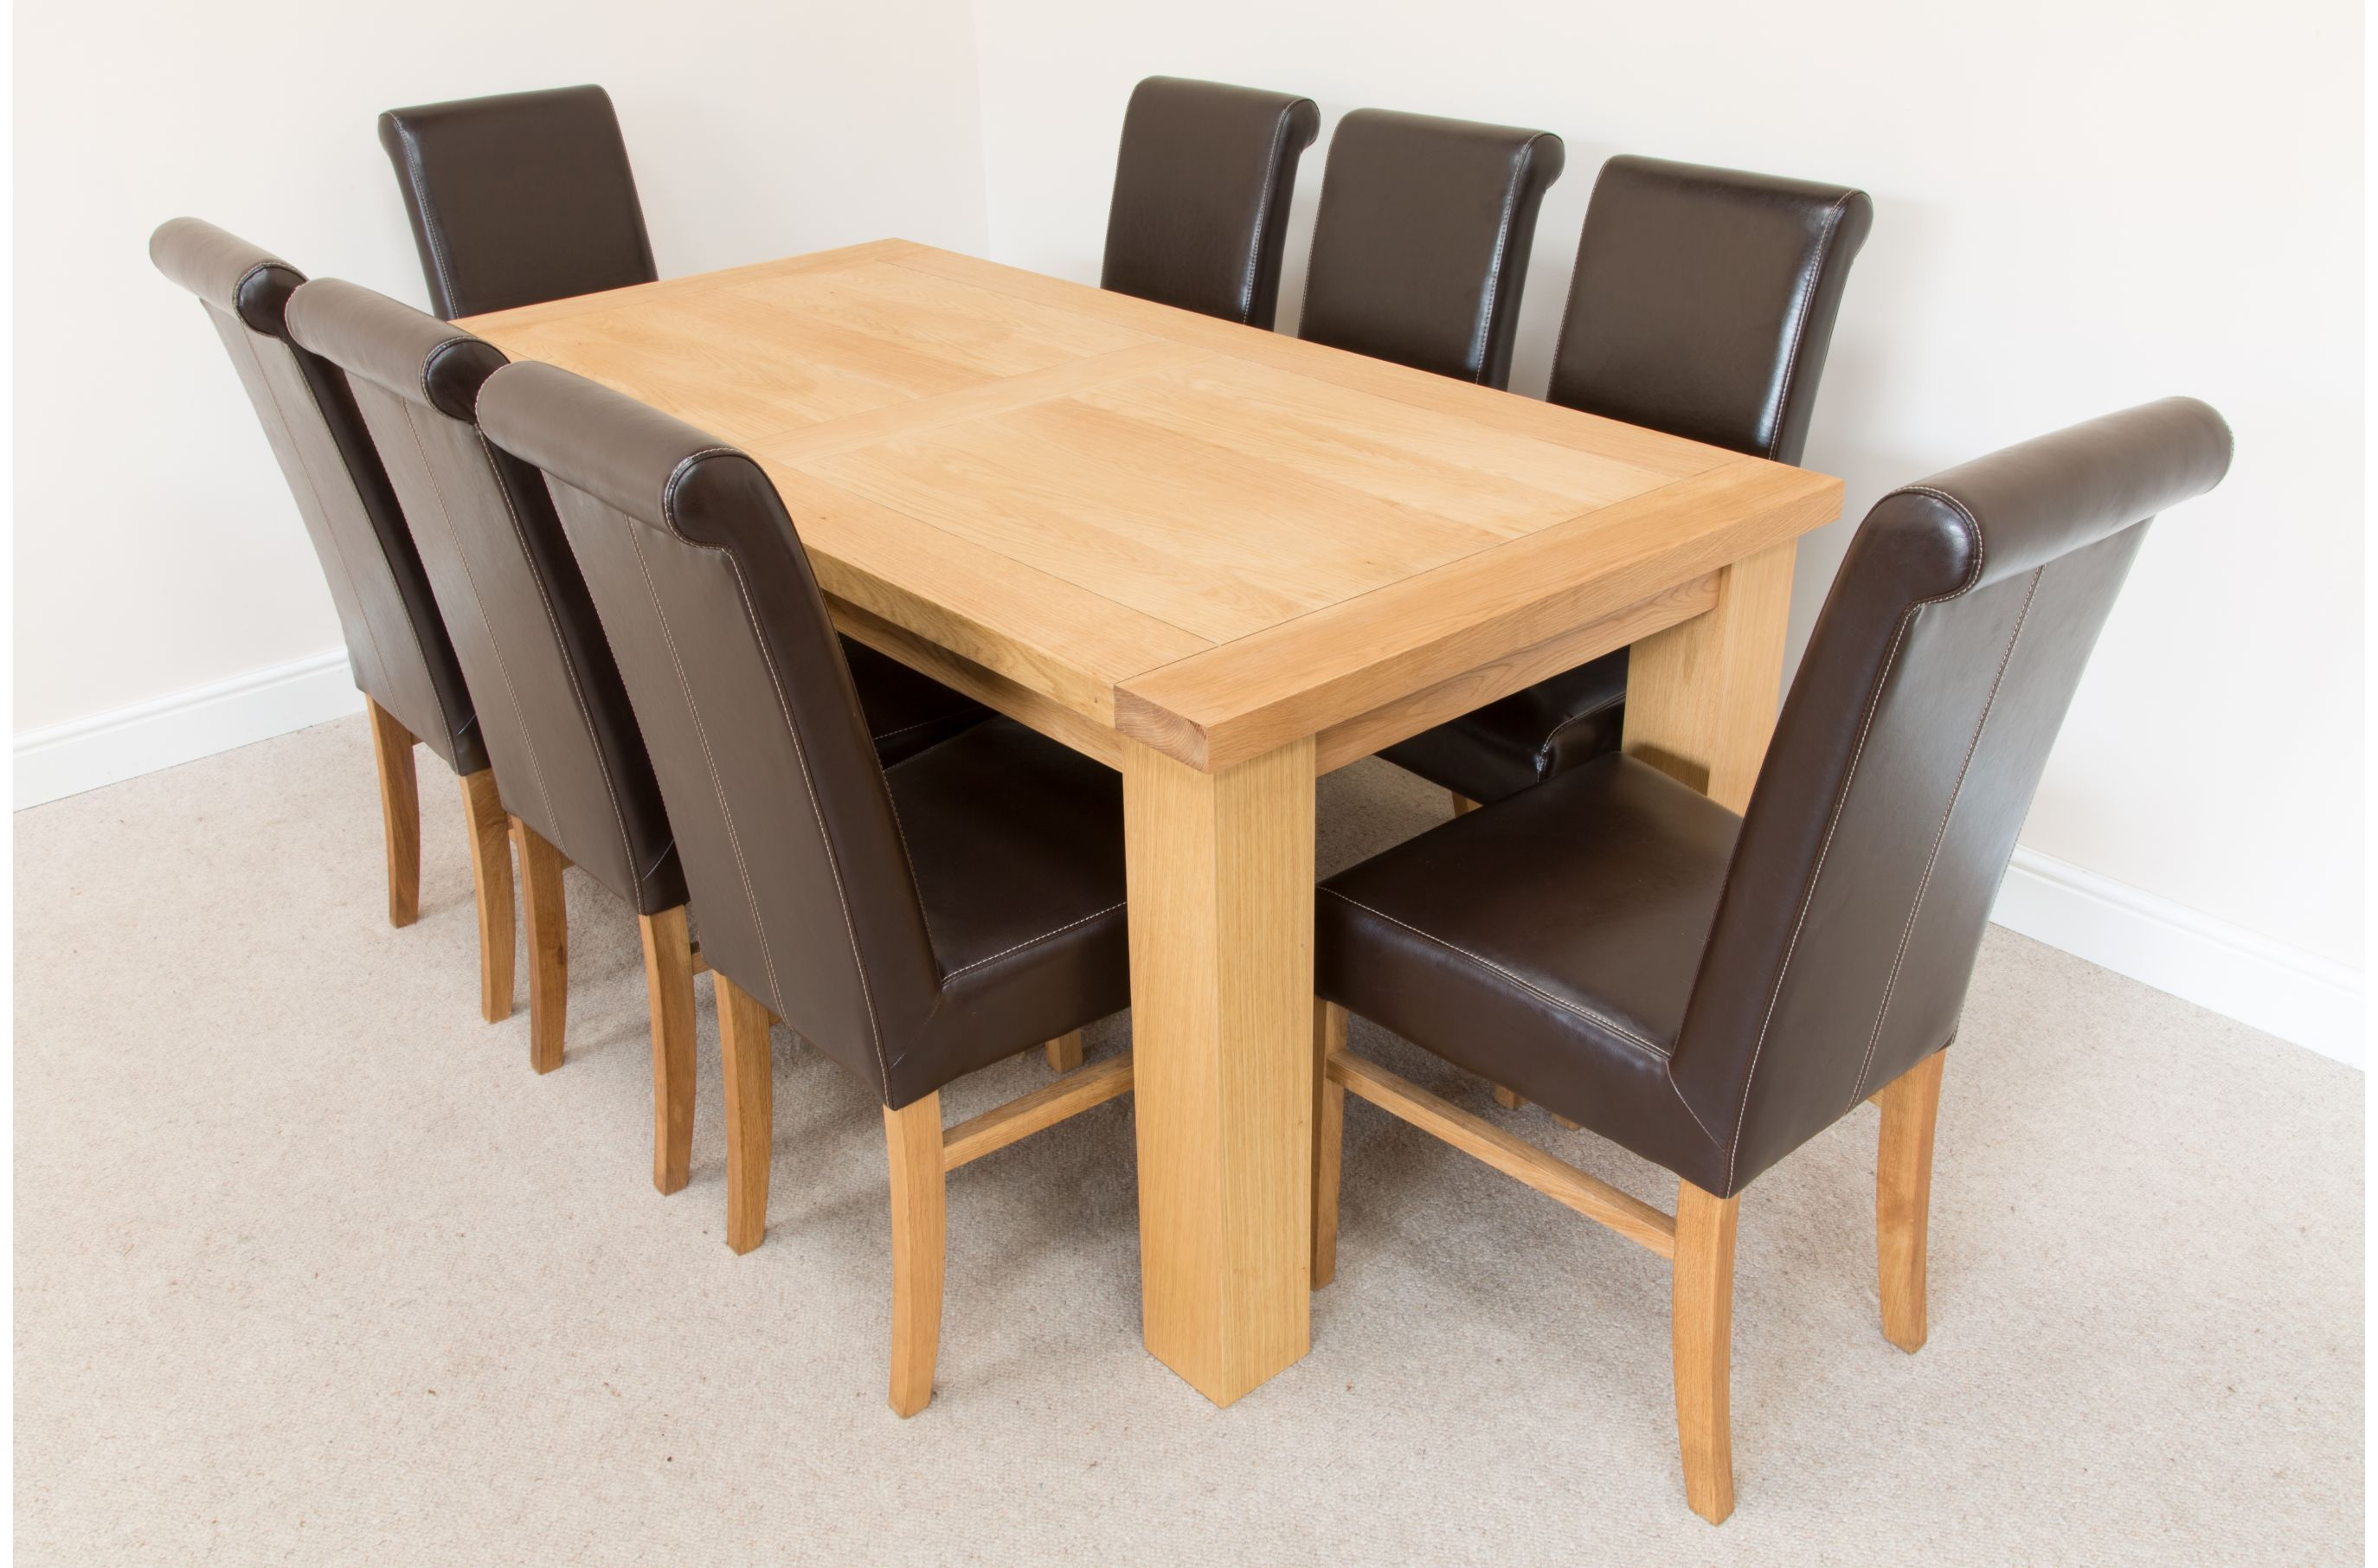 chairoak size full dining white for oak and kitchen ecba sale room tables chairs of table chair